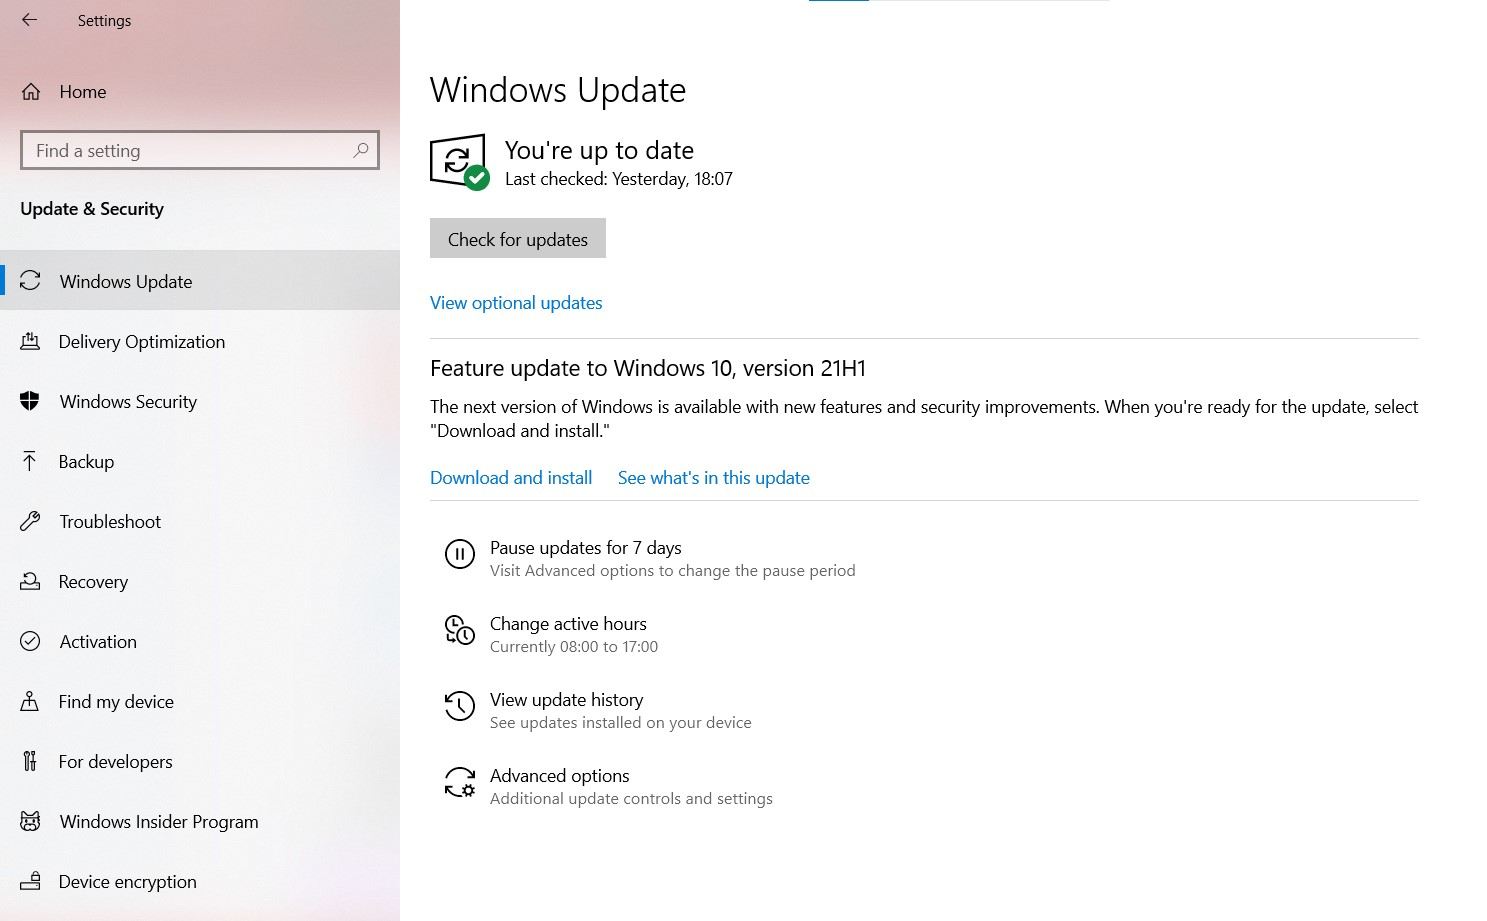 The Windows Update settings page